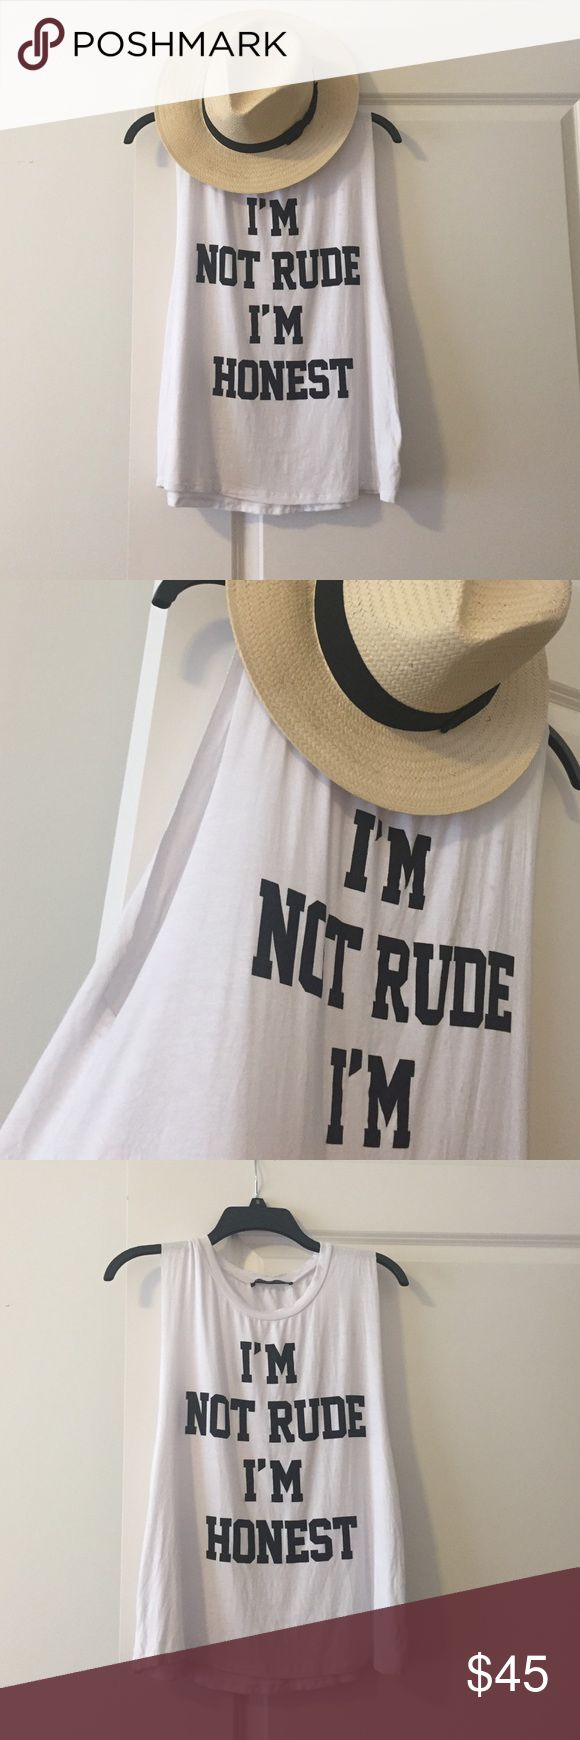 Honest Muscle Tee Softest tee with a no-nonsense attitude statement. For the girl who likes to call it like it is! Raw edge style cut off sleeves. Never worn. But I did take tags off and used wrinkle release spray on it for the photo. Perfect for summer! Oversized small. Still not fully sure if I want to sell but haven't worn it yet. Did pay a good bit for this from a boutique at the beach. Let me know if interested. Tops Muscle Tees